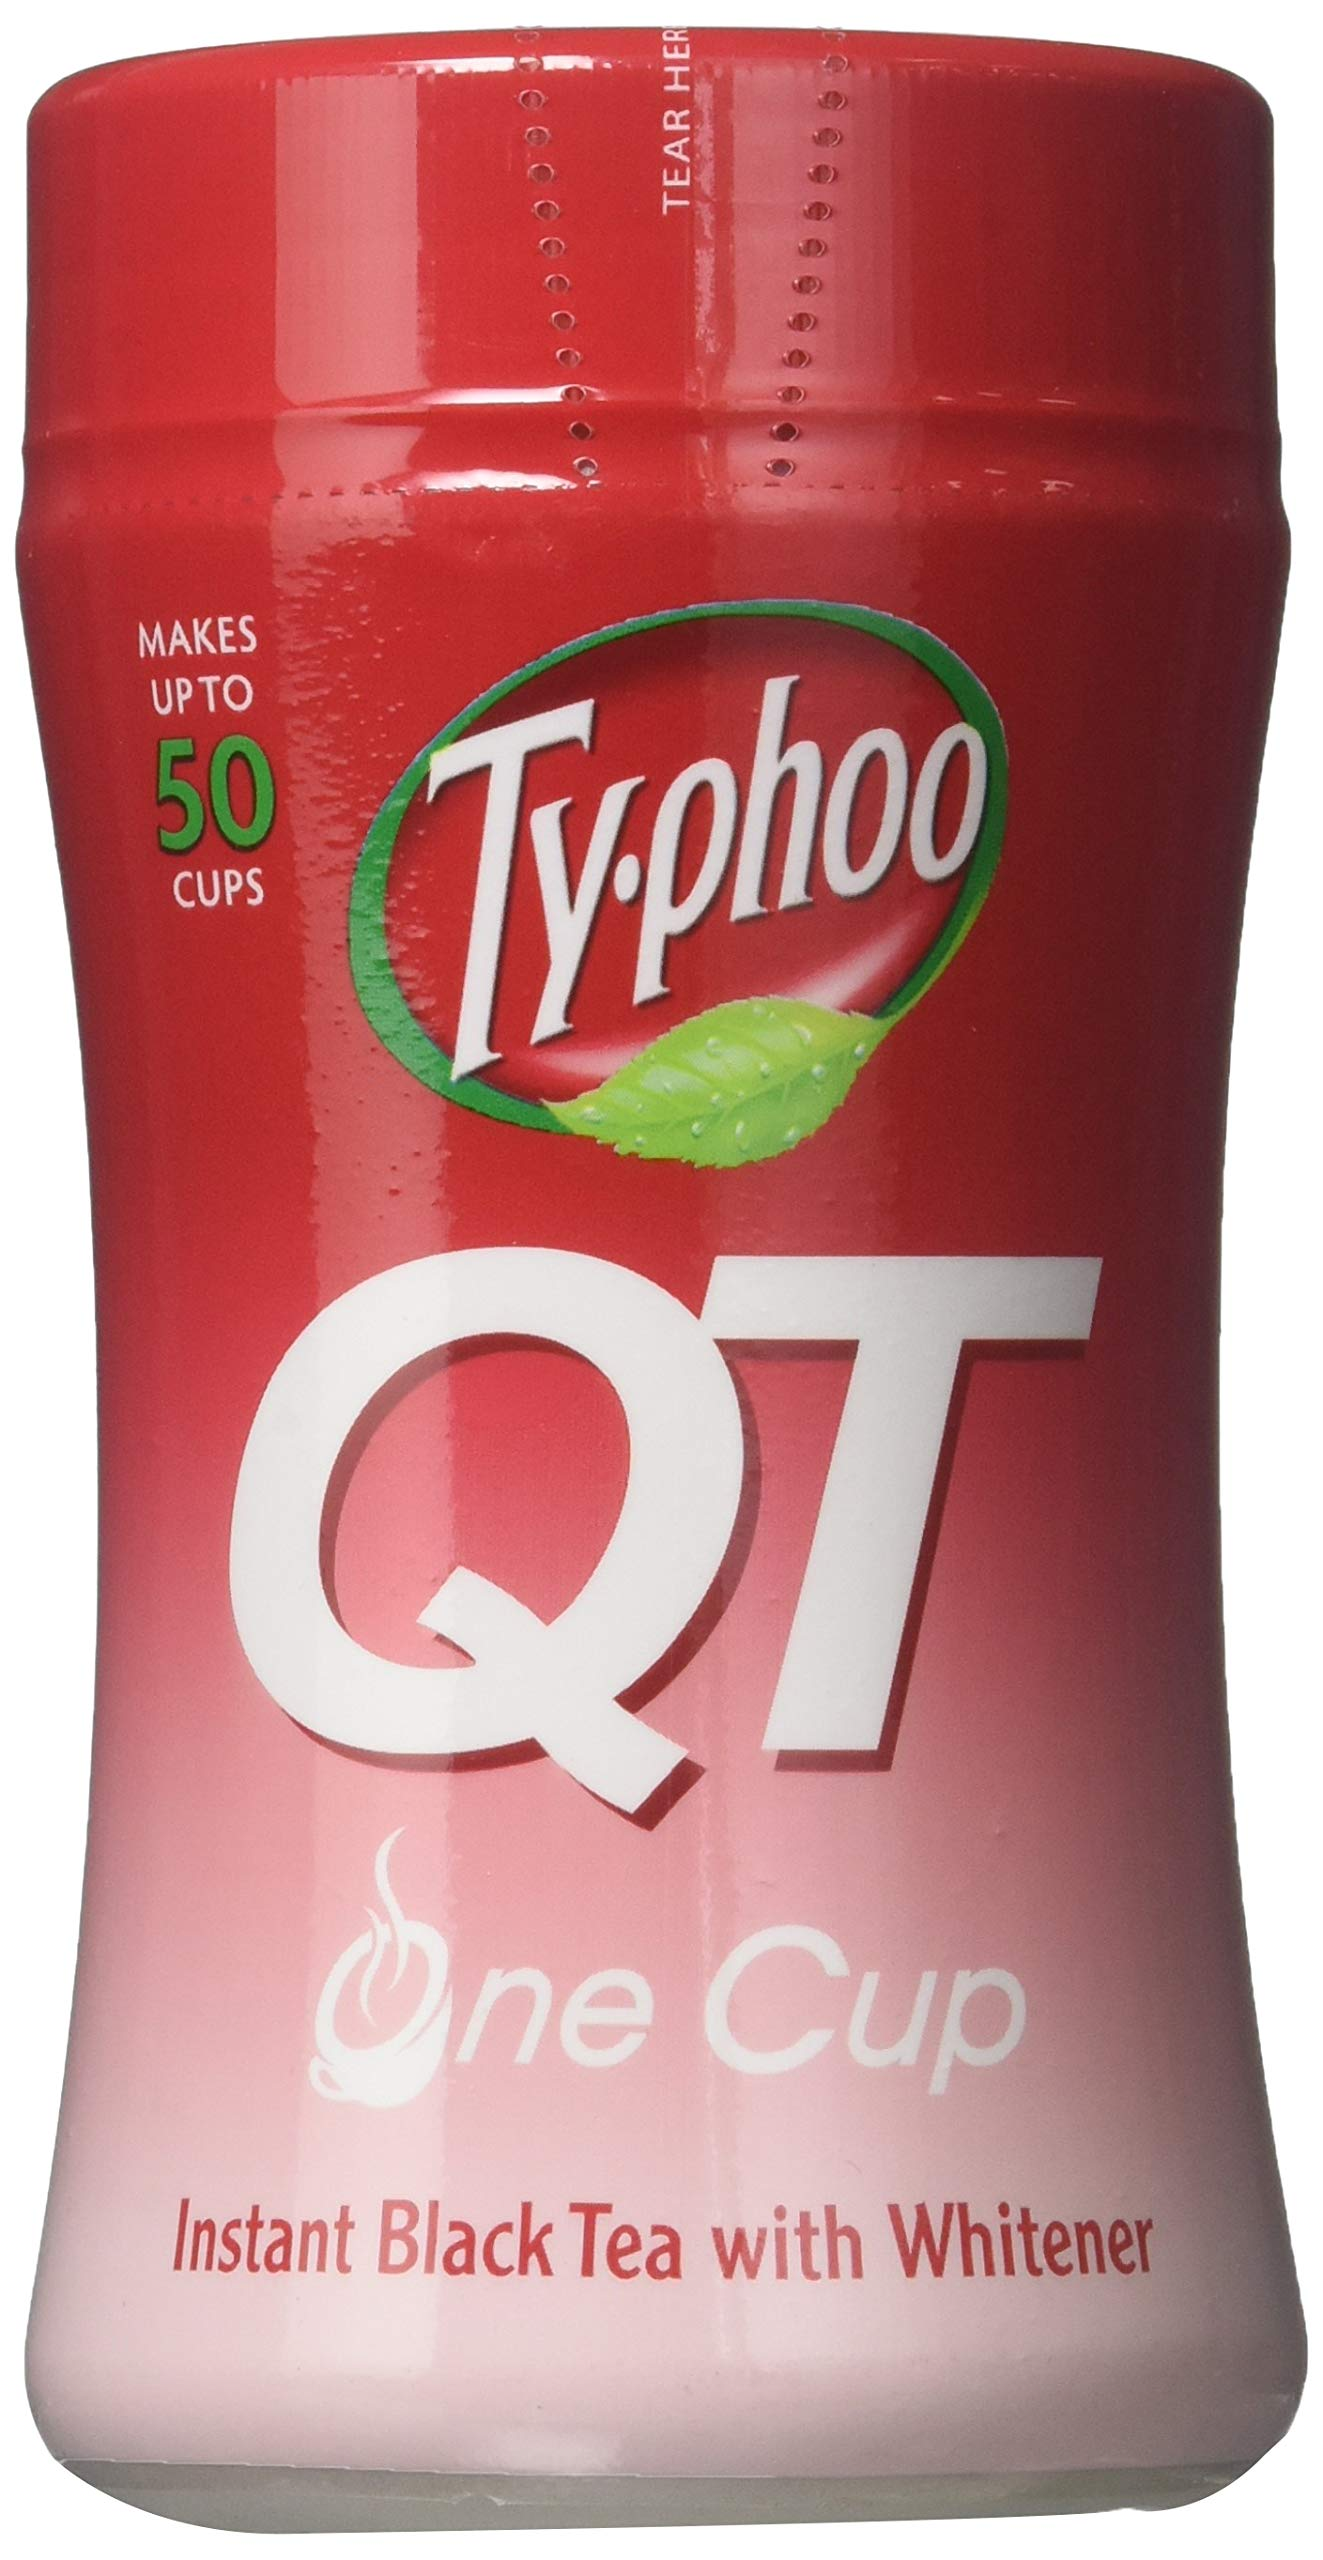 Typhoo QT Instant Black Tea with Whitener - (125g)